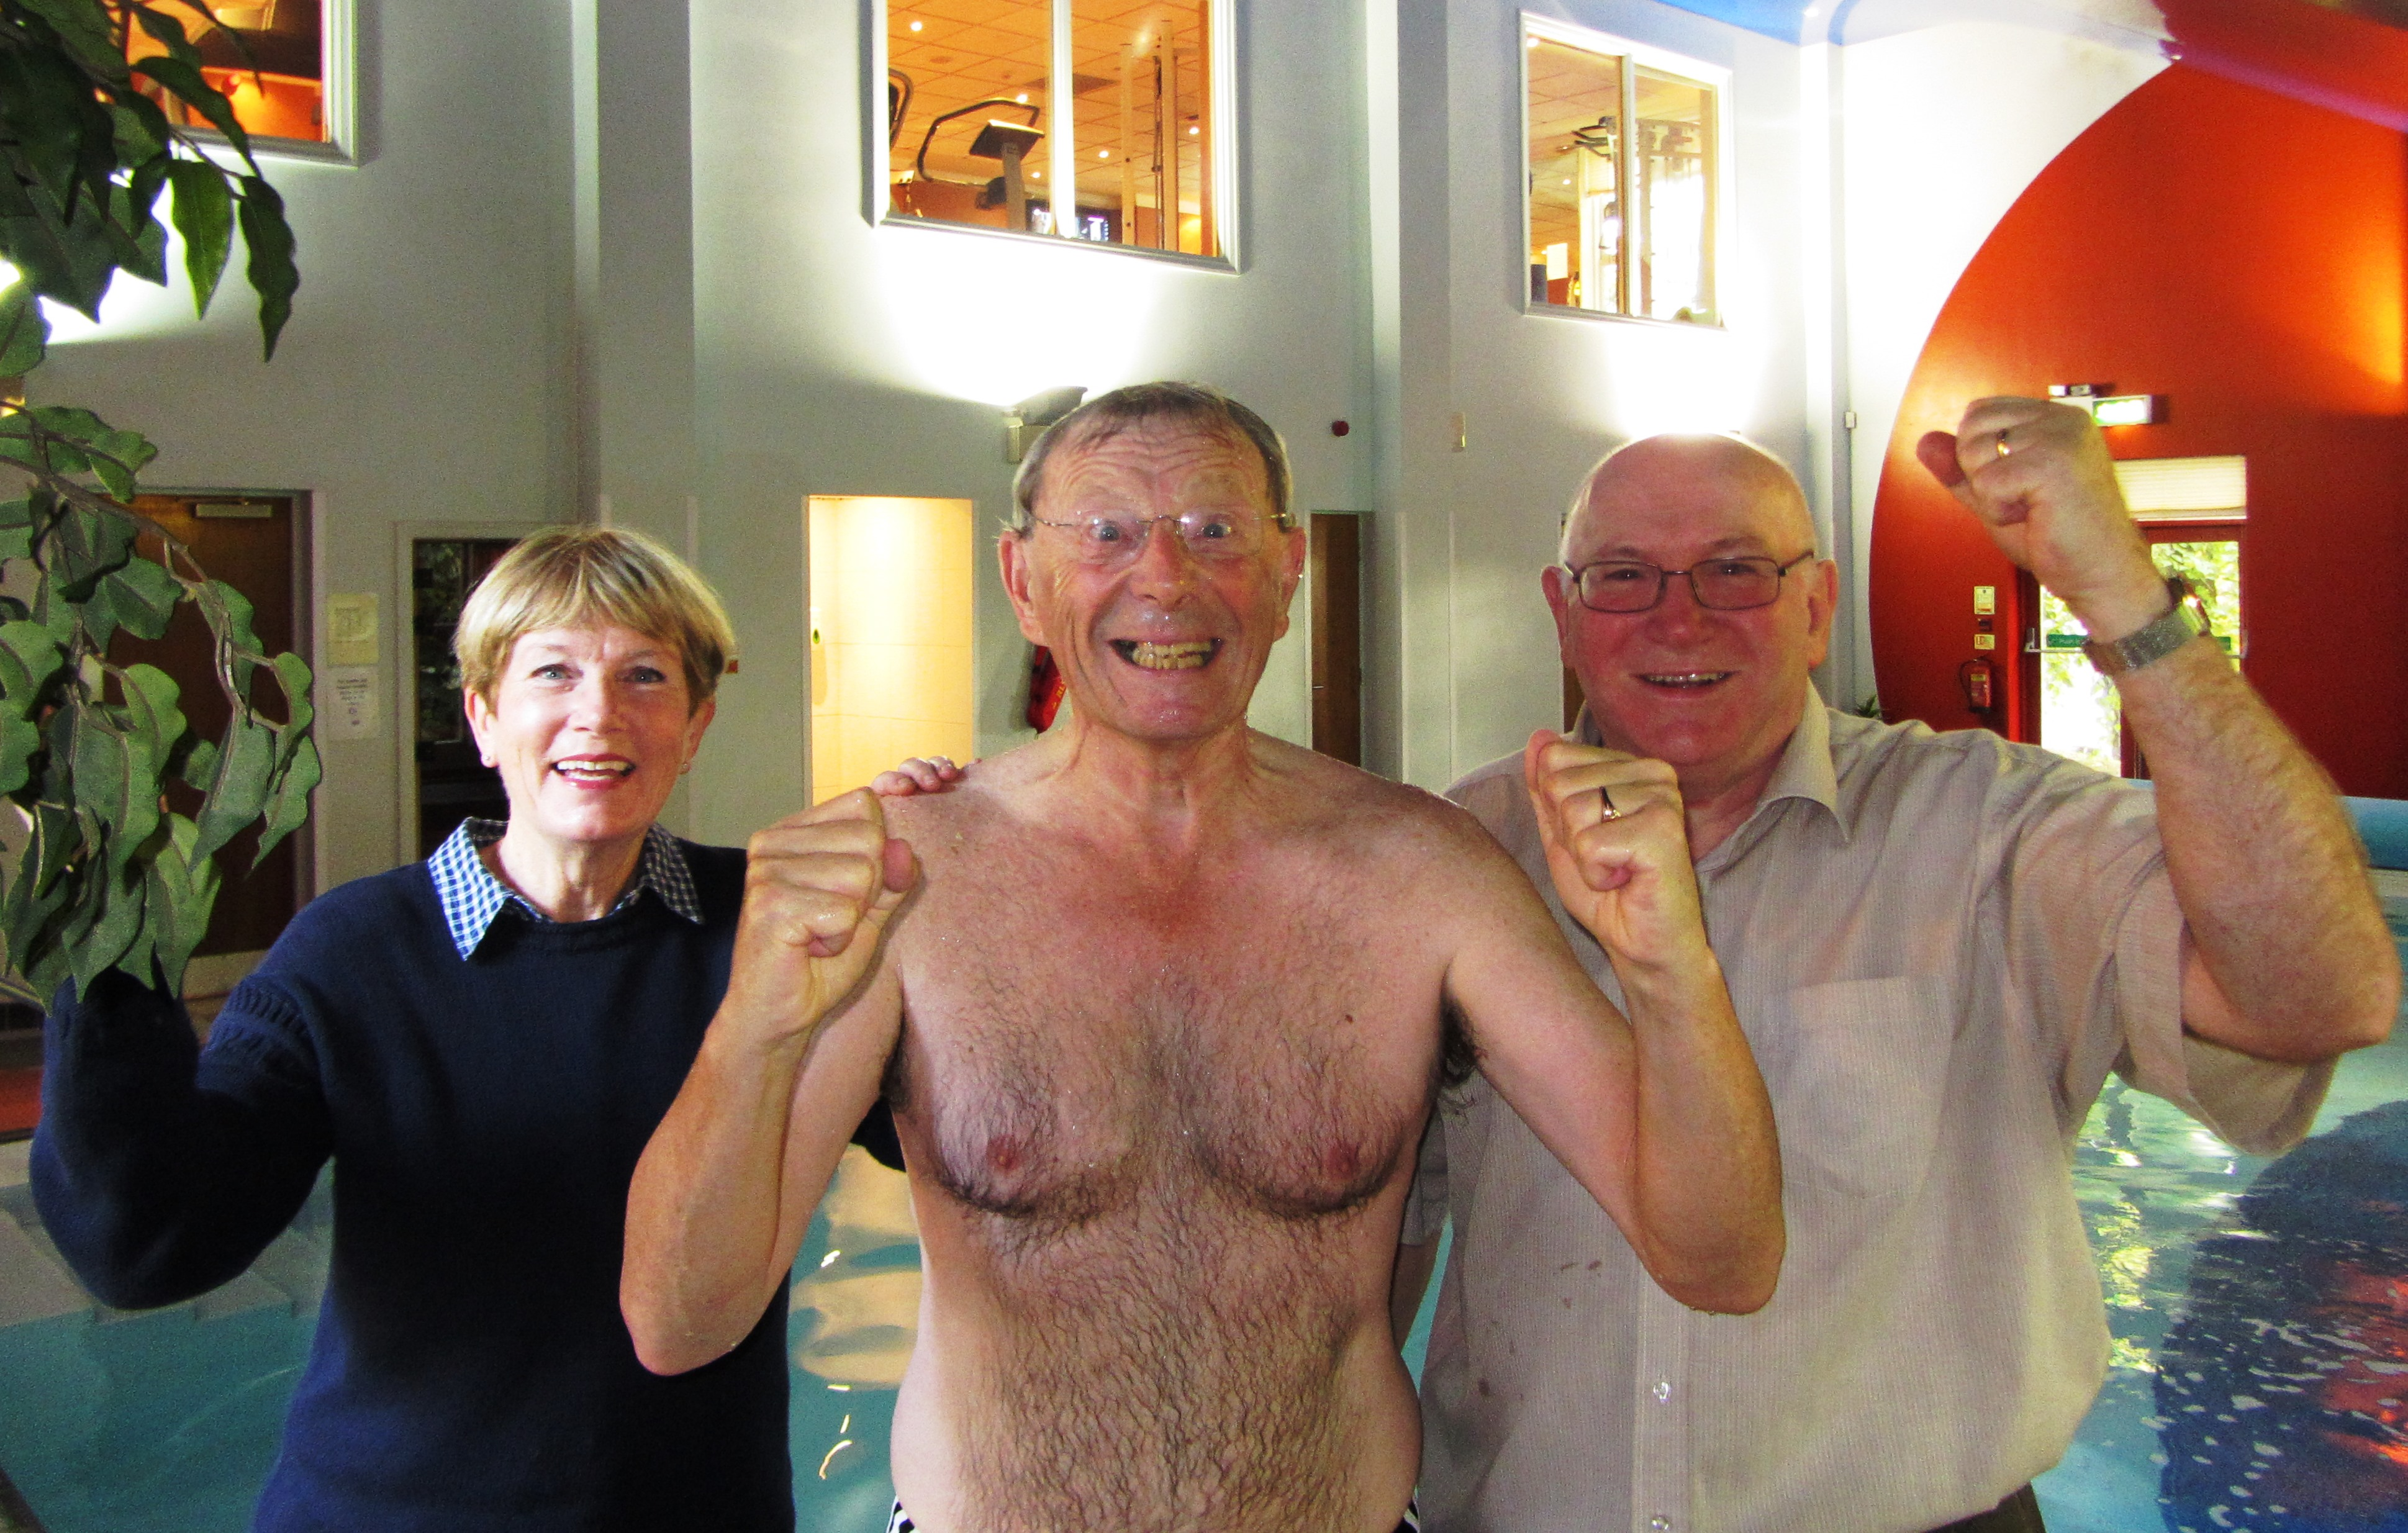 Swimathon Raises Over 2 000 For Kids With Cancer Rotary District 1220